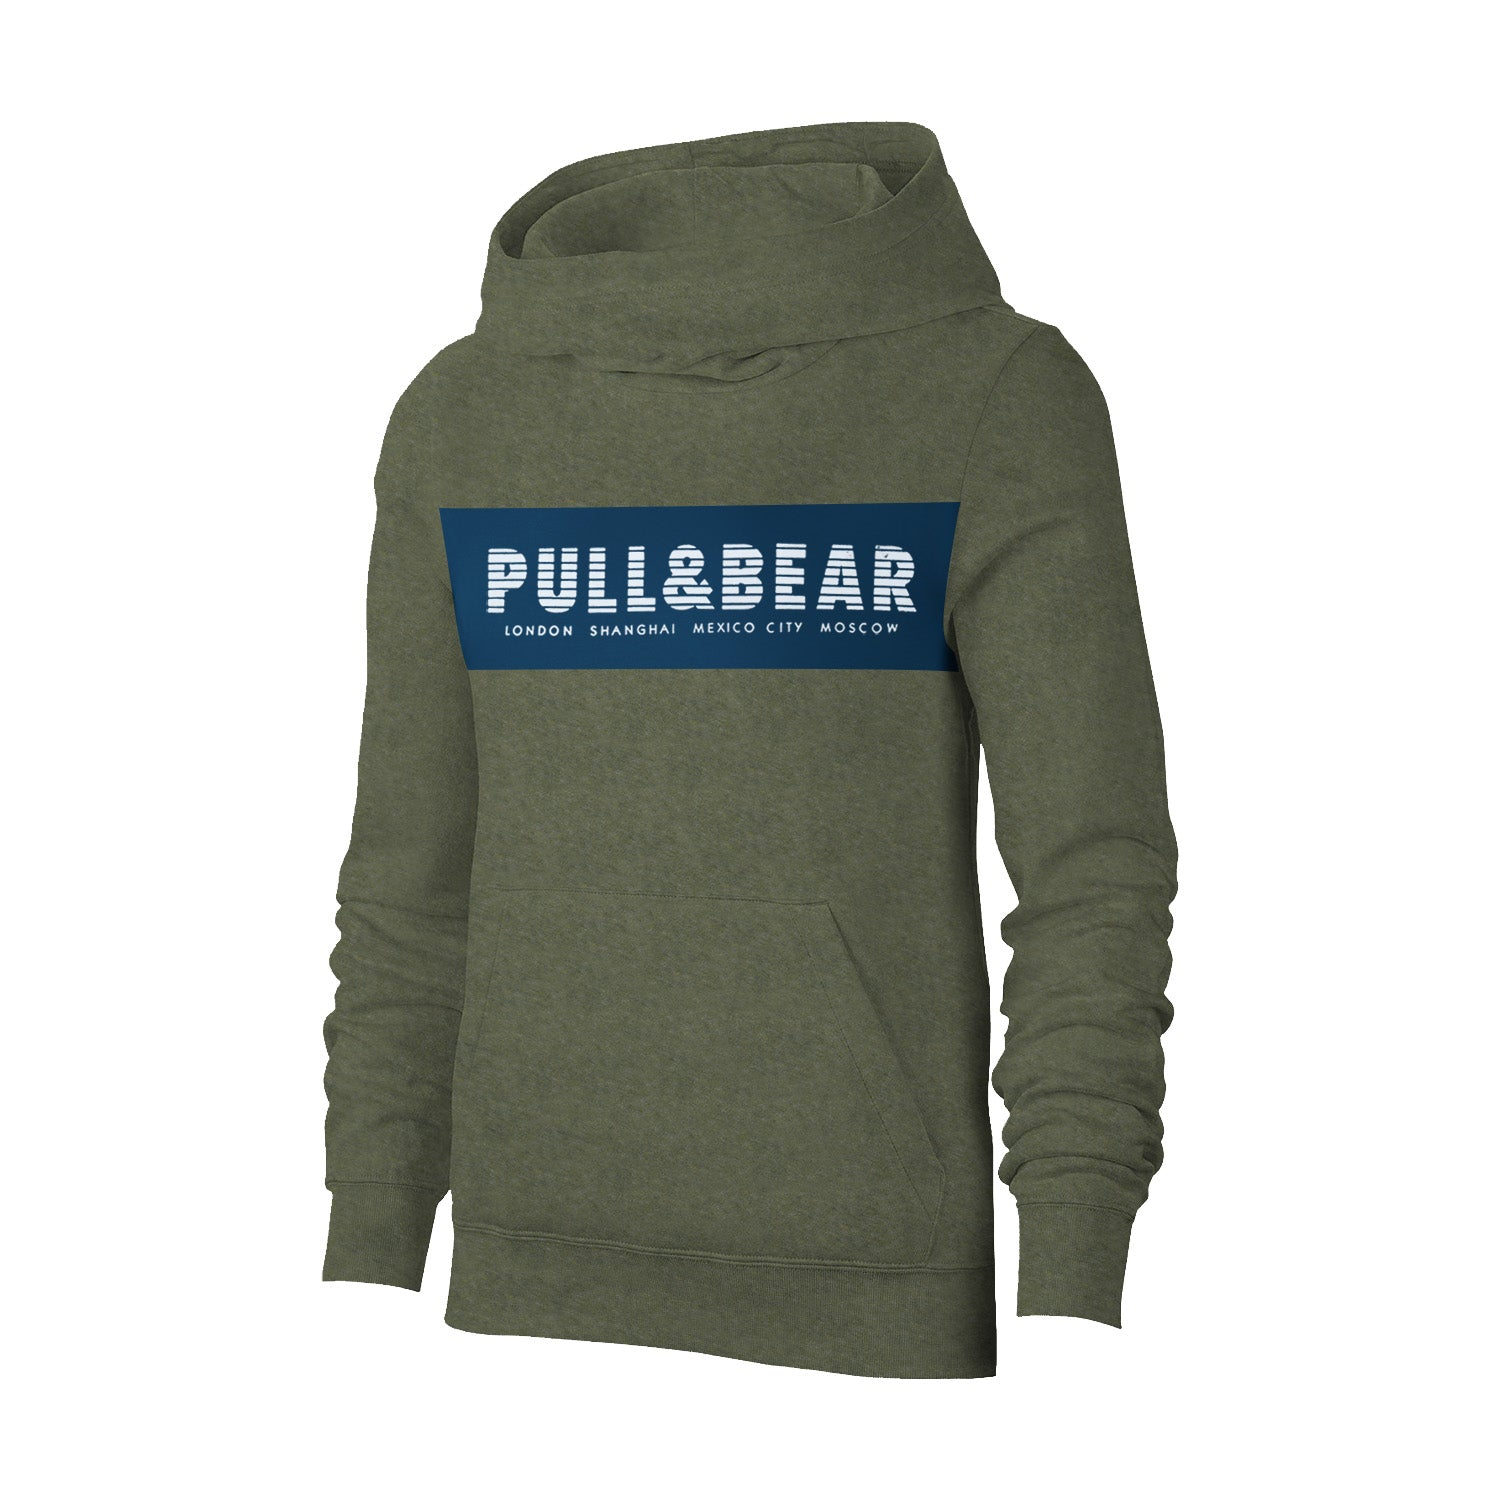 P&B Fleece Pullover Hoodie For Men-Olive Melange with Navy Panel-BE13317